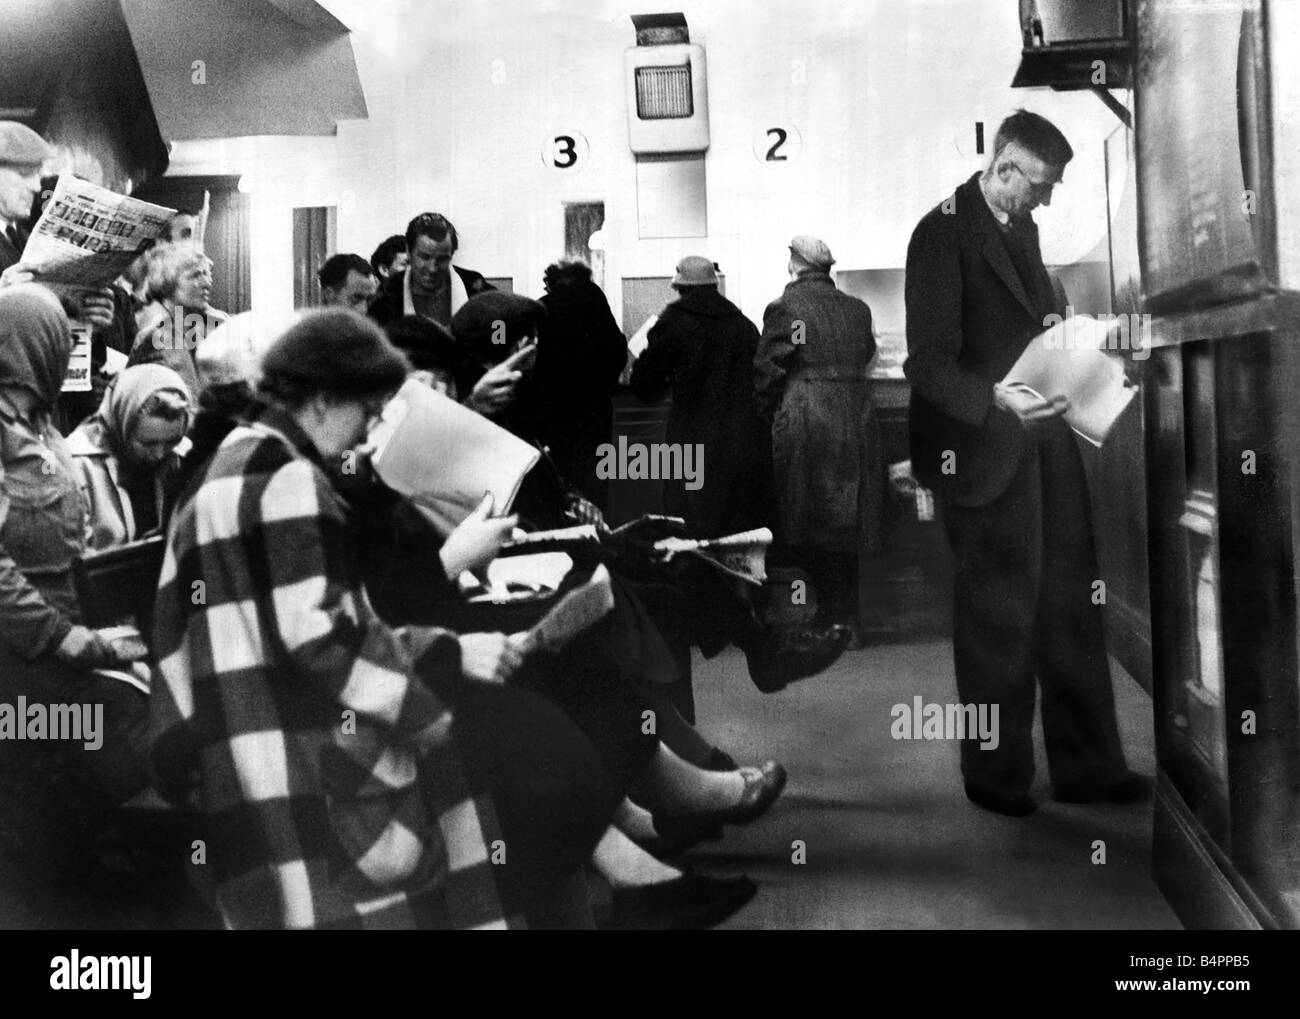 Punters placing their bets at the betting shop May 1958 - Stock Image